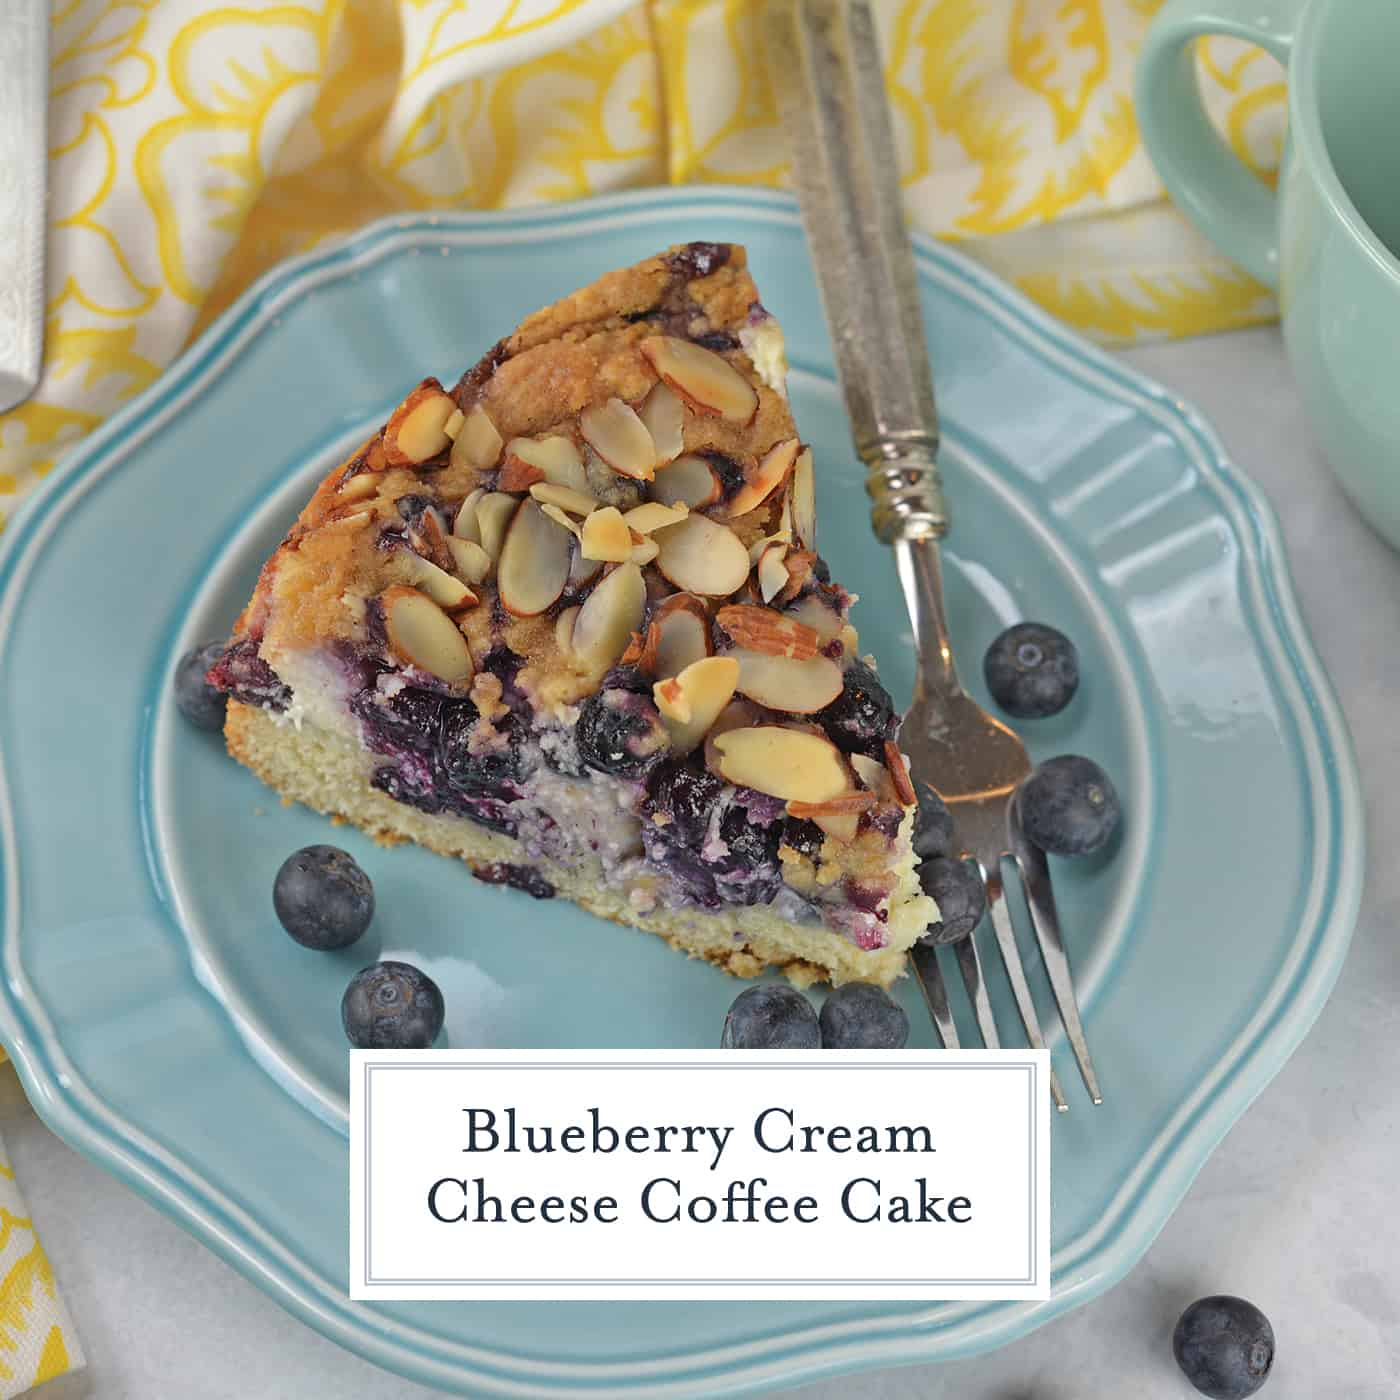 Blueberry Cream Cheese Coffee Cake is an easy coffee cake recipe with three layers of tender cake, silky cream cheese and almond streusel topping. #creamcheesecoffeecake #coffeecakerecipe #creamcheesecoffeecake www.savoryexperiments.com